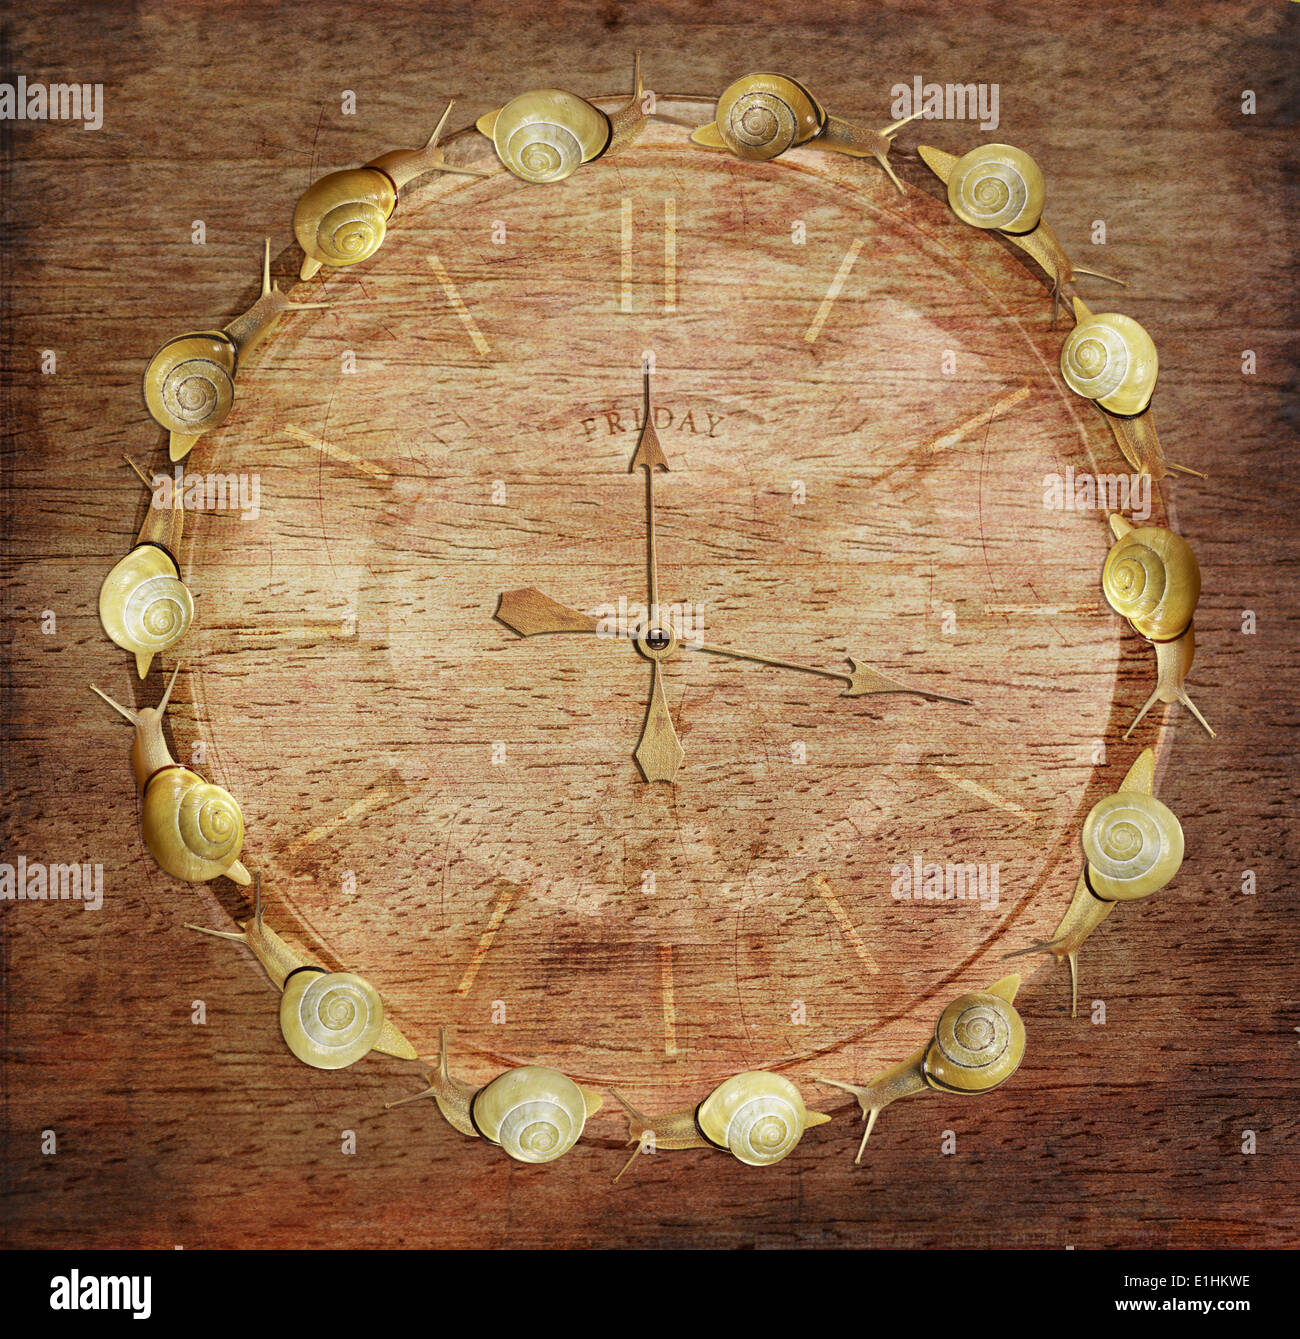 Slow Time. Retro Watch with Snails on Wood. Art Concept Stock Photo